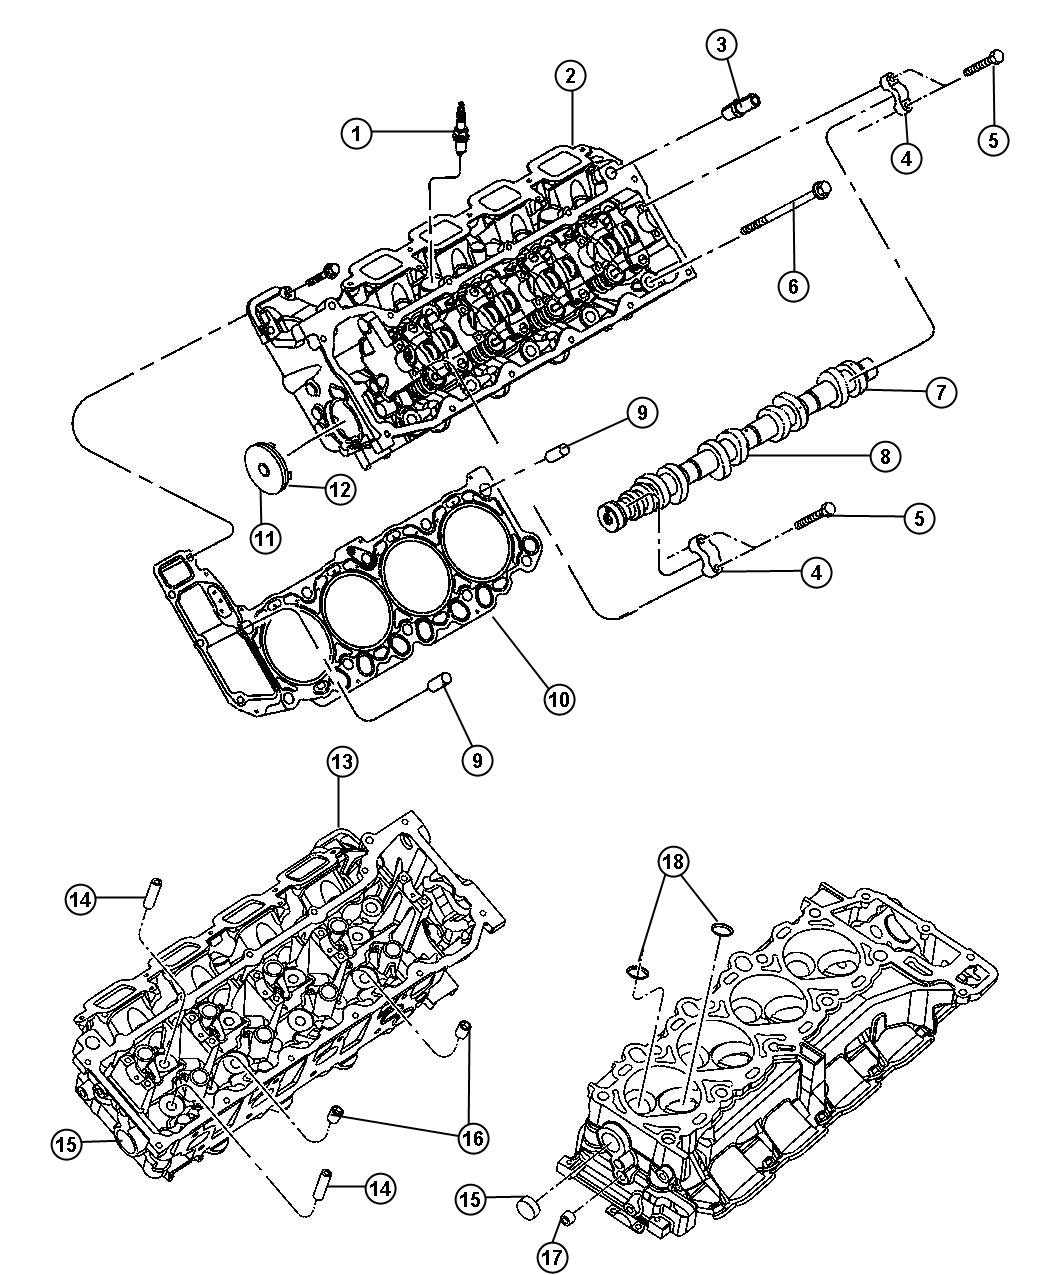 68303918AA - Jeep Spark Plug. Suggested